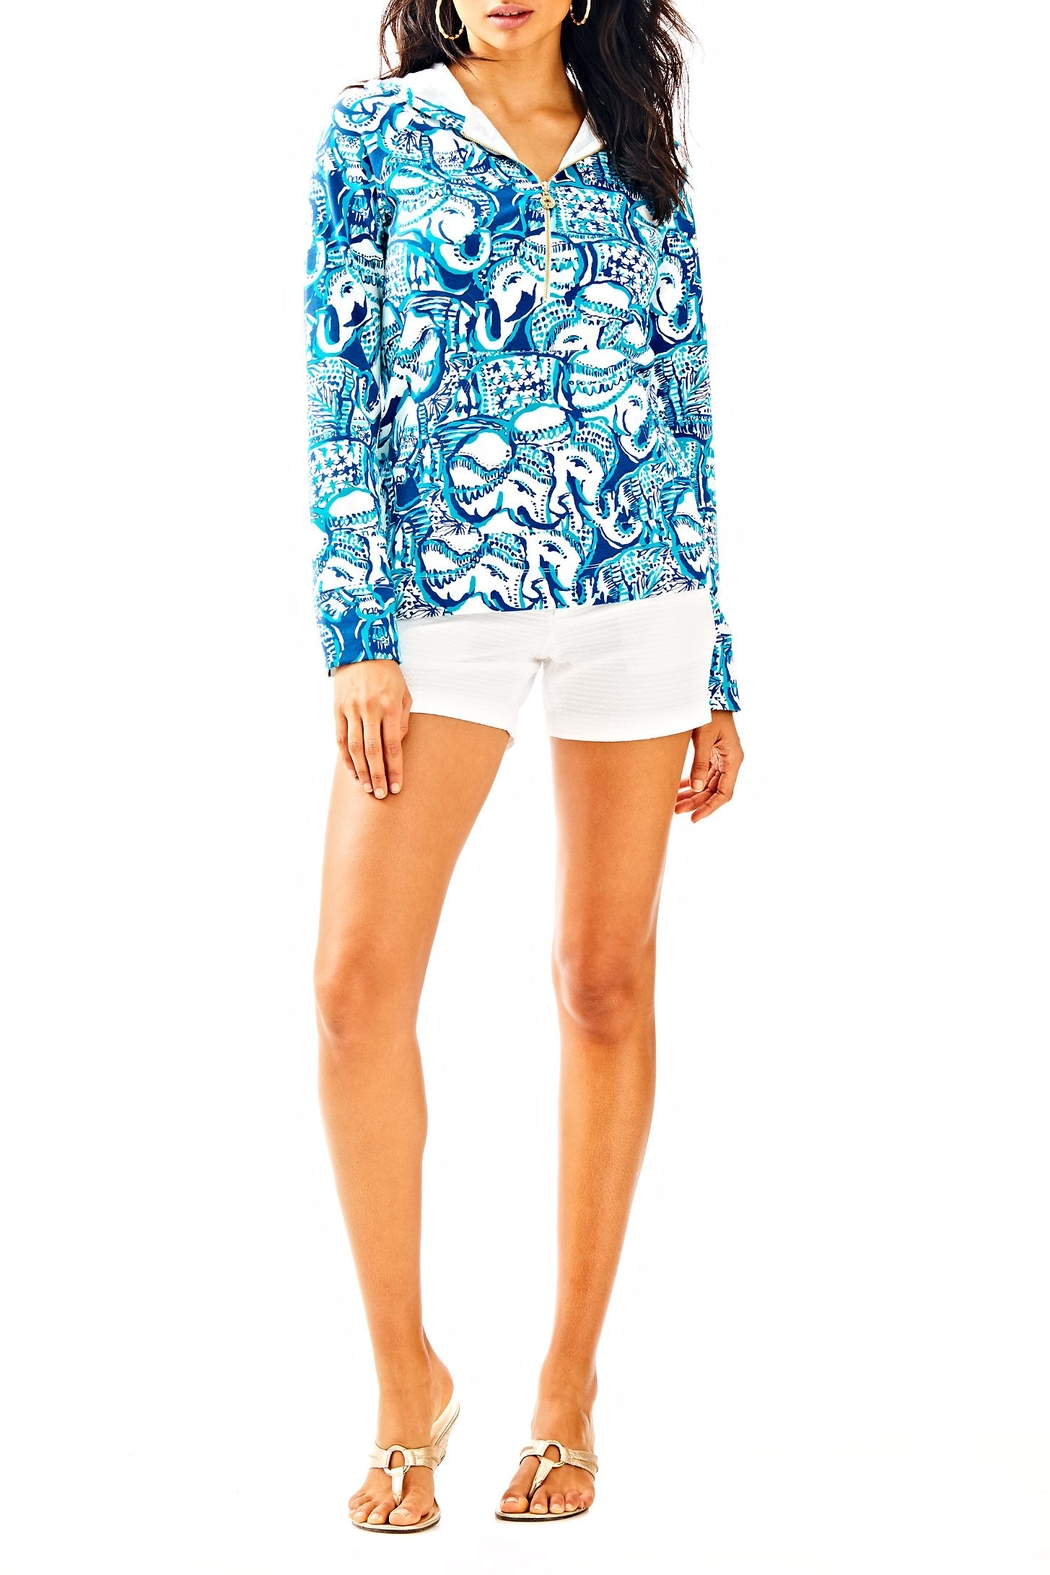 Lilly Pulitzer Luxletic Hooded Popover Top - Front Full Image